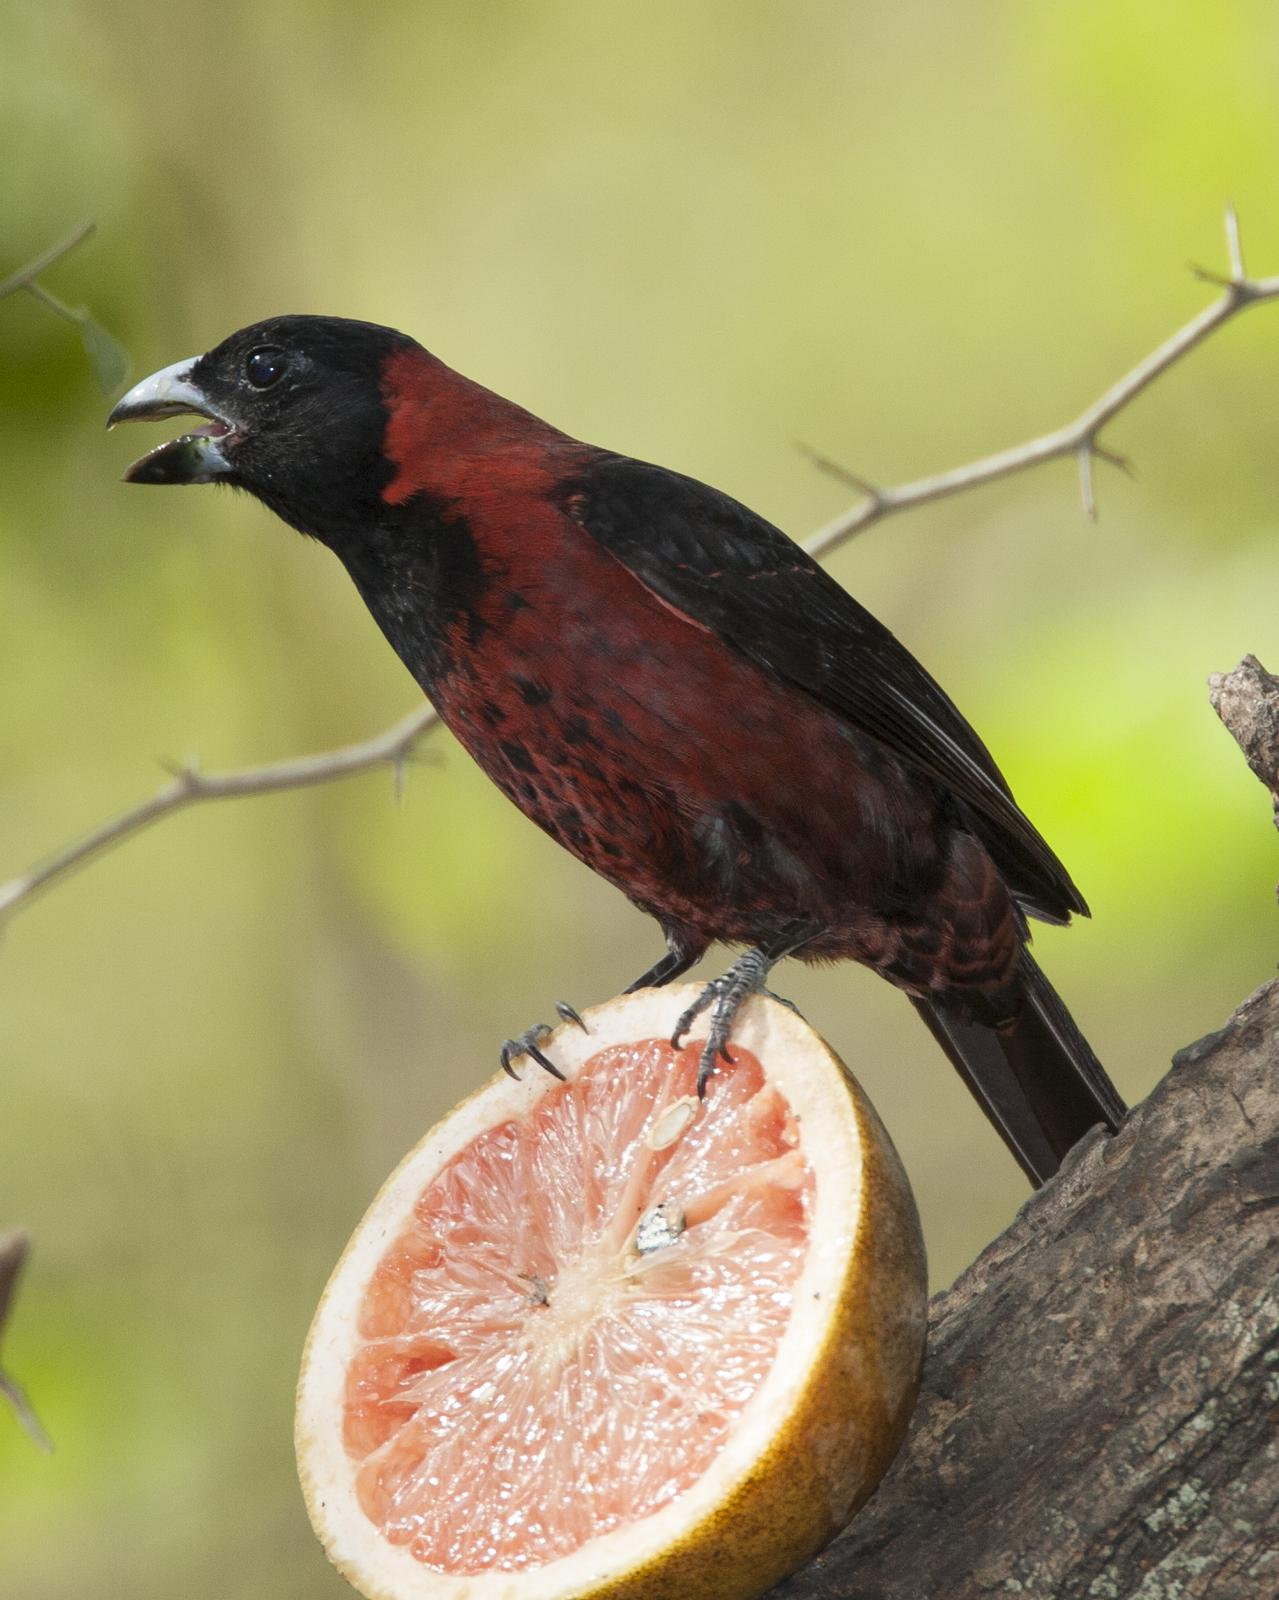 Crimson-collared Grosbeak Photo by Jeff Moore